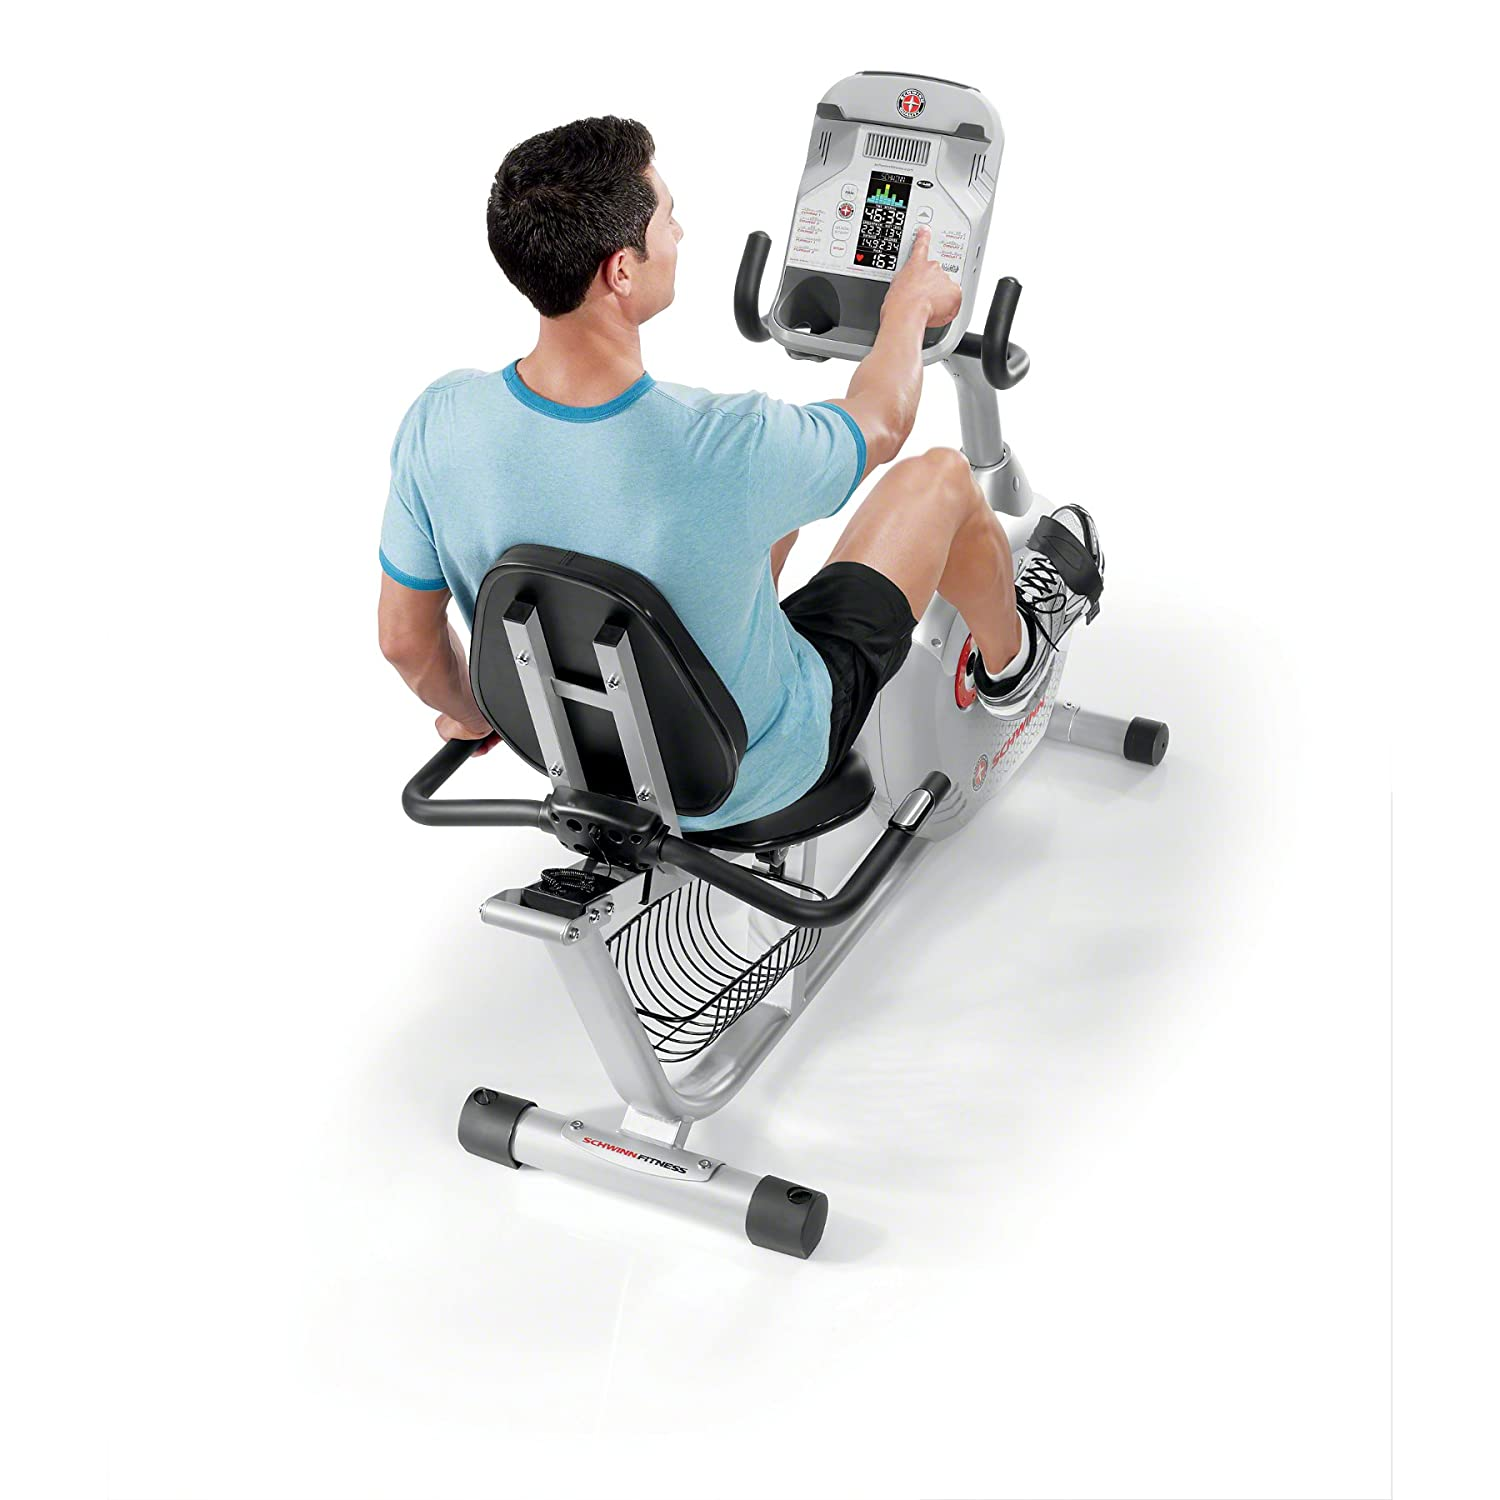 Schwinn SRB 1500 Recumbent Bike http://uniquehomesolutions.org/2013-monthly-prizes